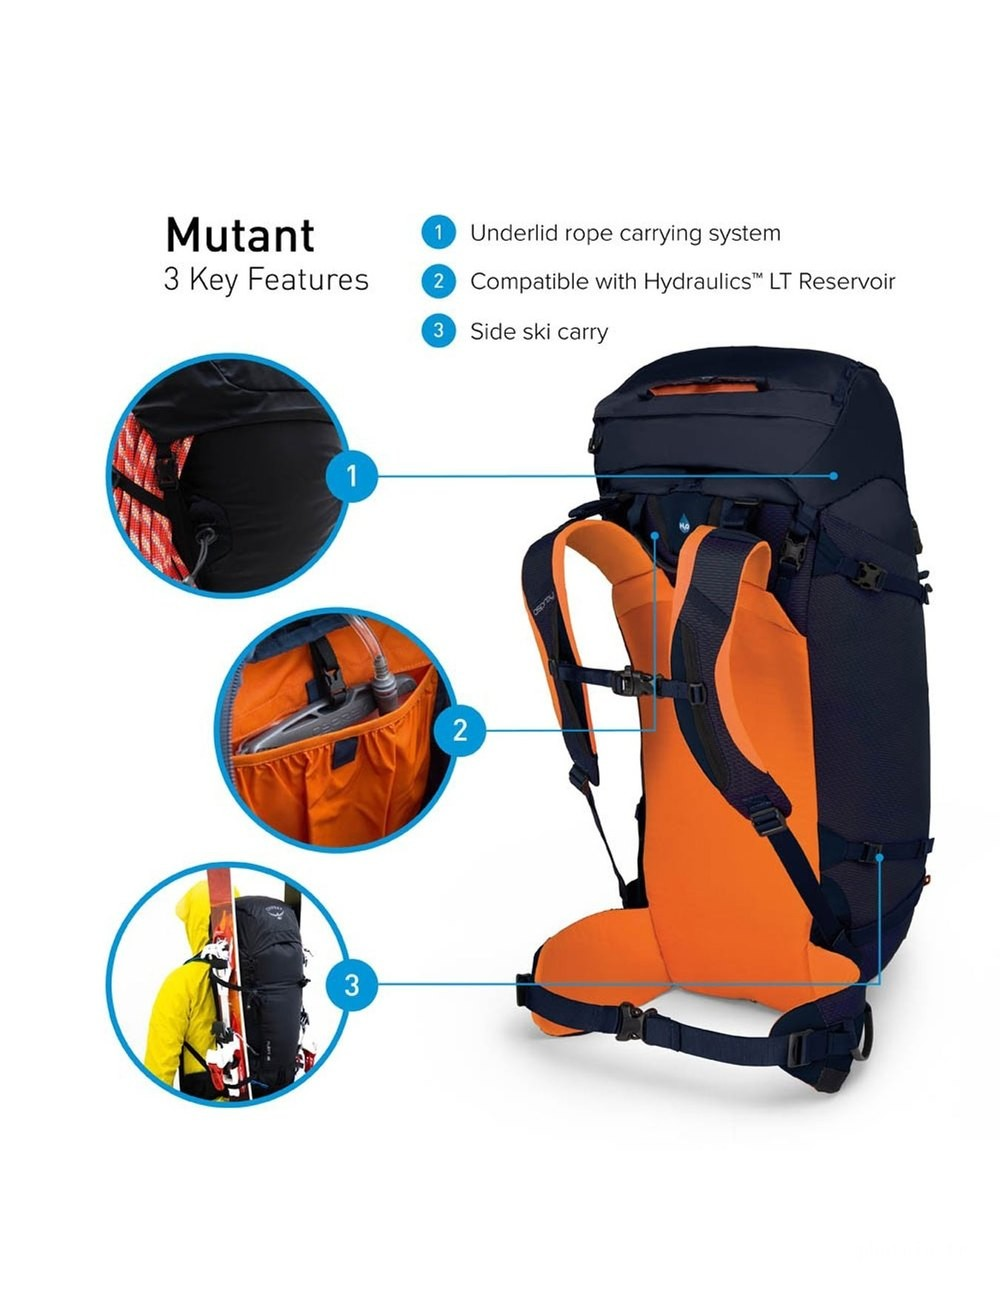 Osprey Sac d'alpinisme - homme -  Mutant 52 Blue Fire - 2018/19